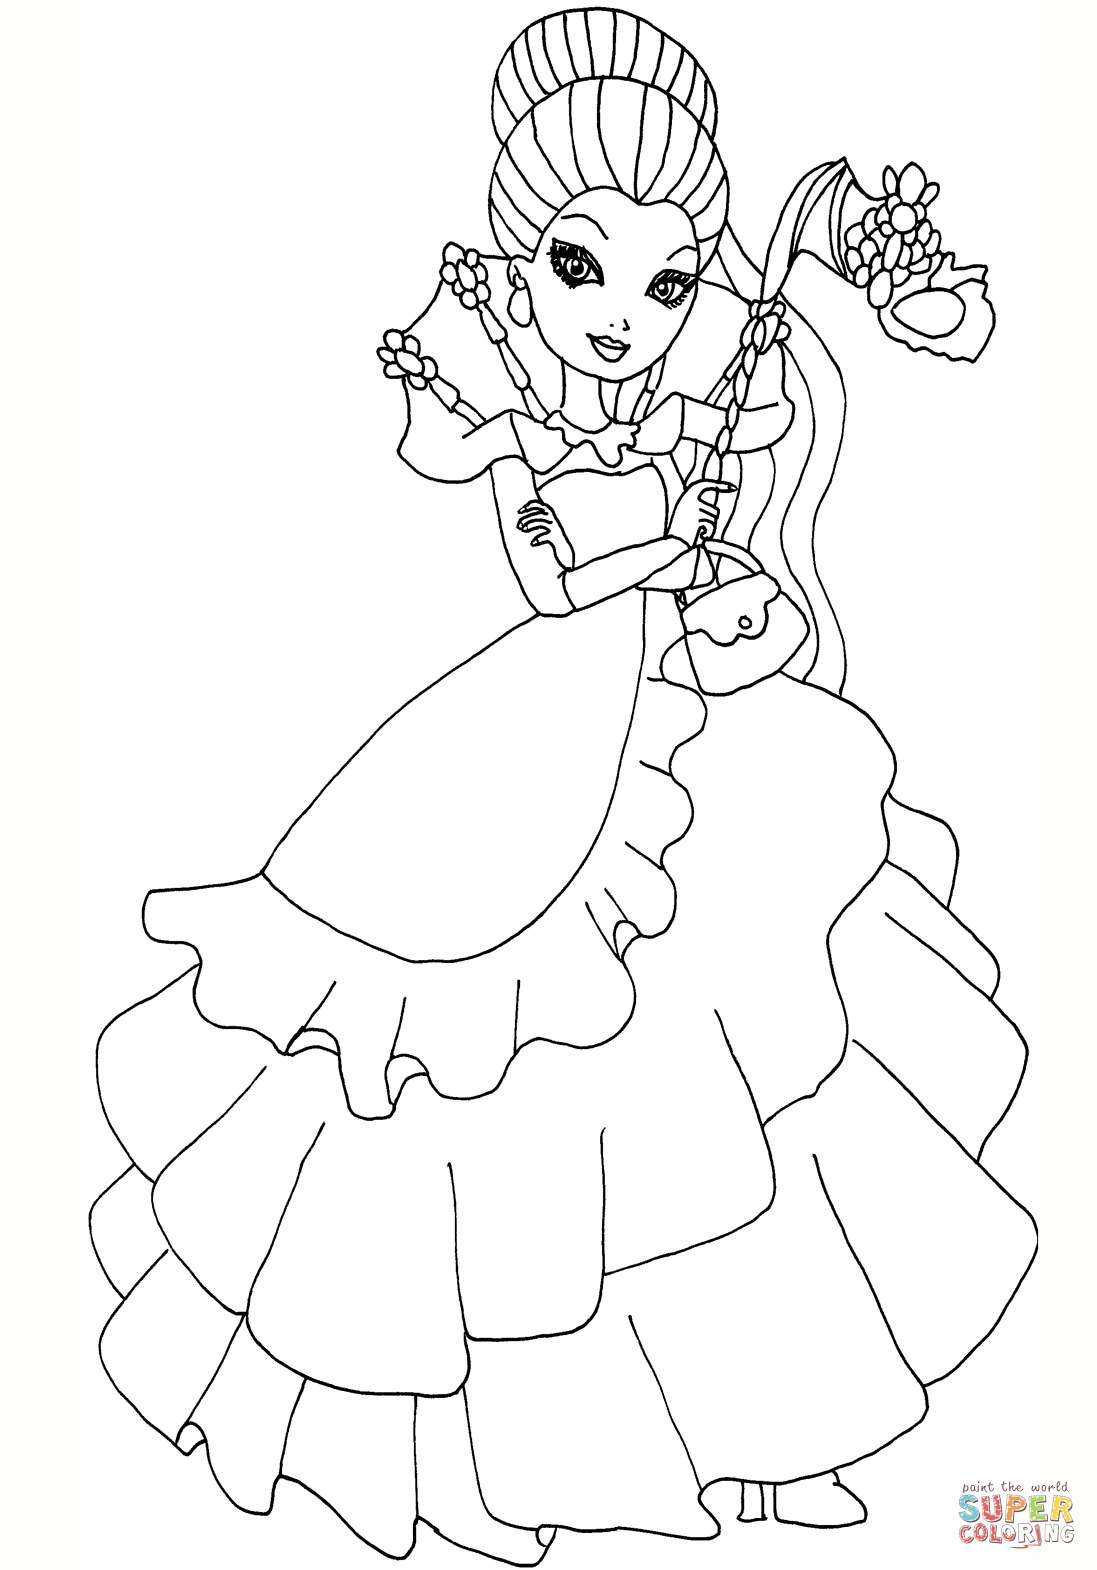 Coloring pages queen elizabeth 1 - Download Queen Coloring Pages